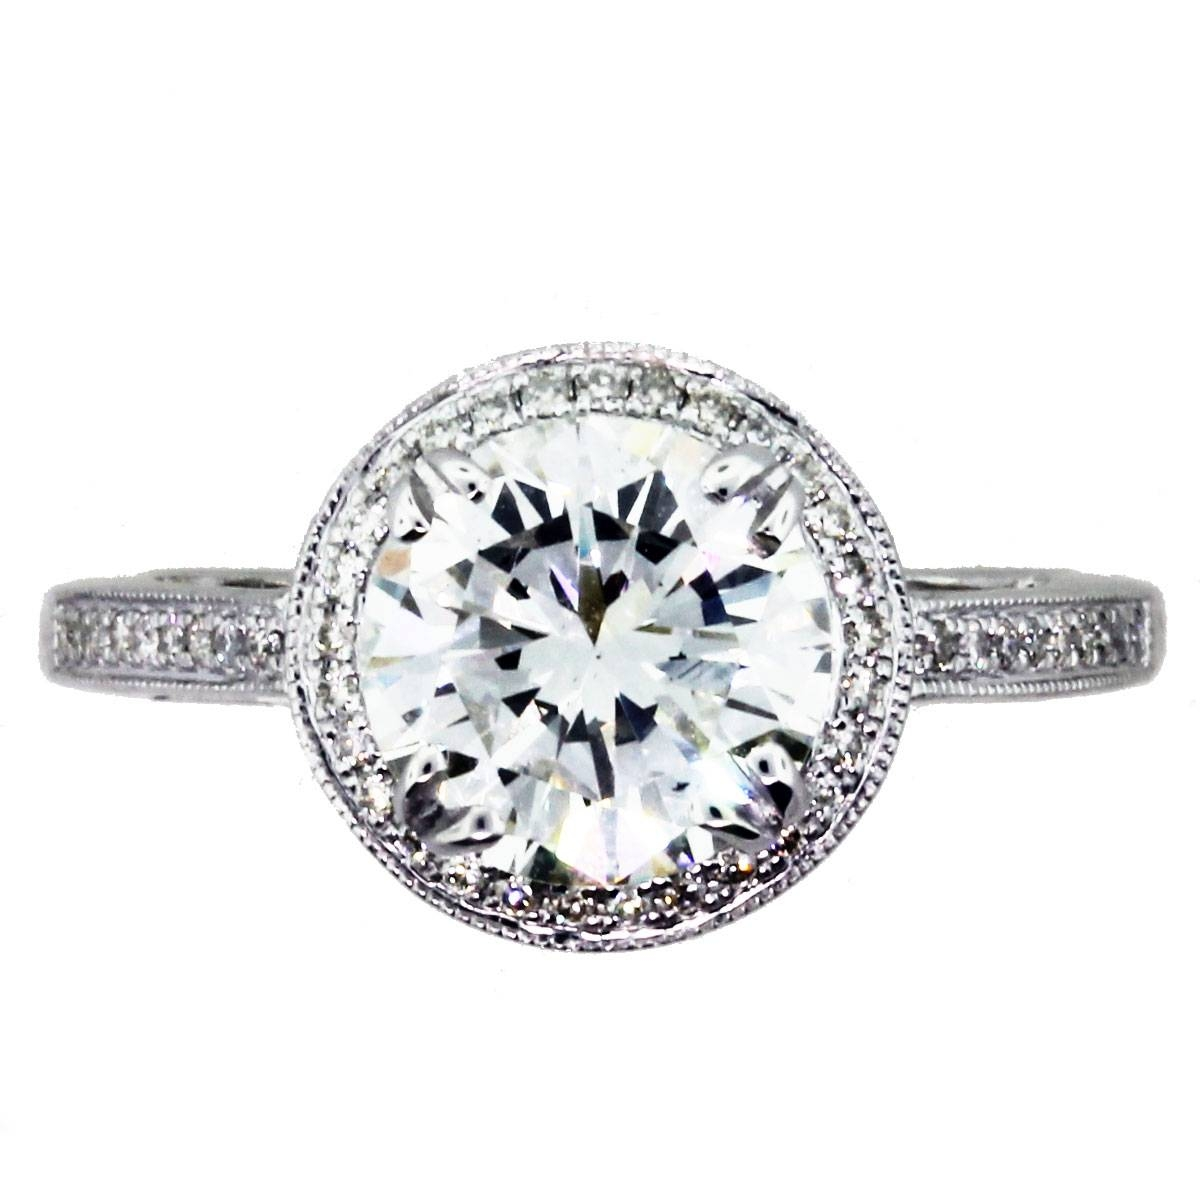 2 Carat Round Diamond Halo Setting Engagement Ring Boca Raton In Diamond Wedding Rings Settings (View 2 of 15)